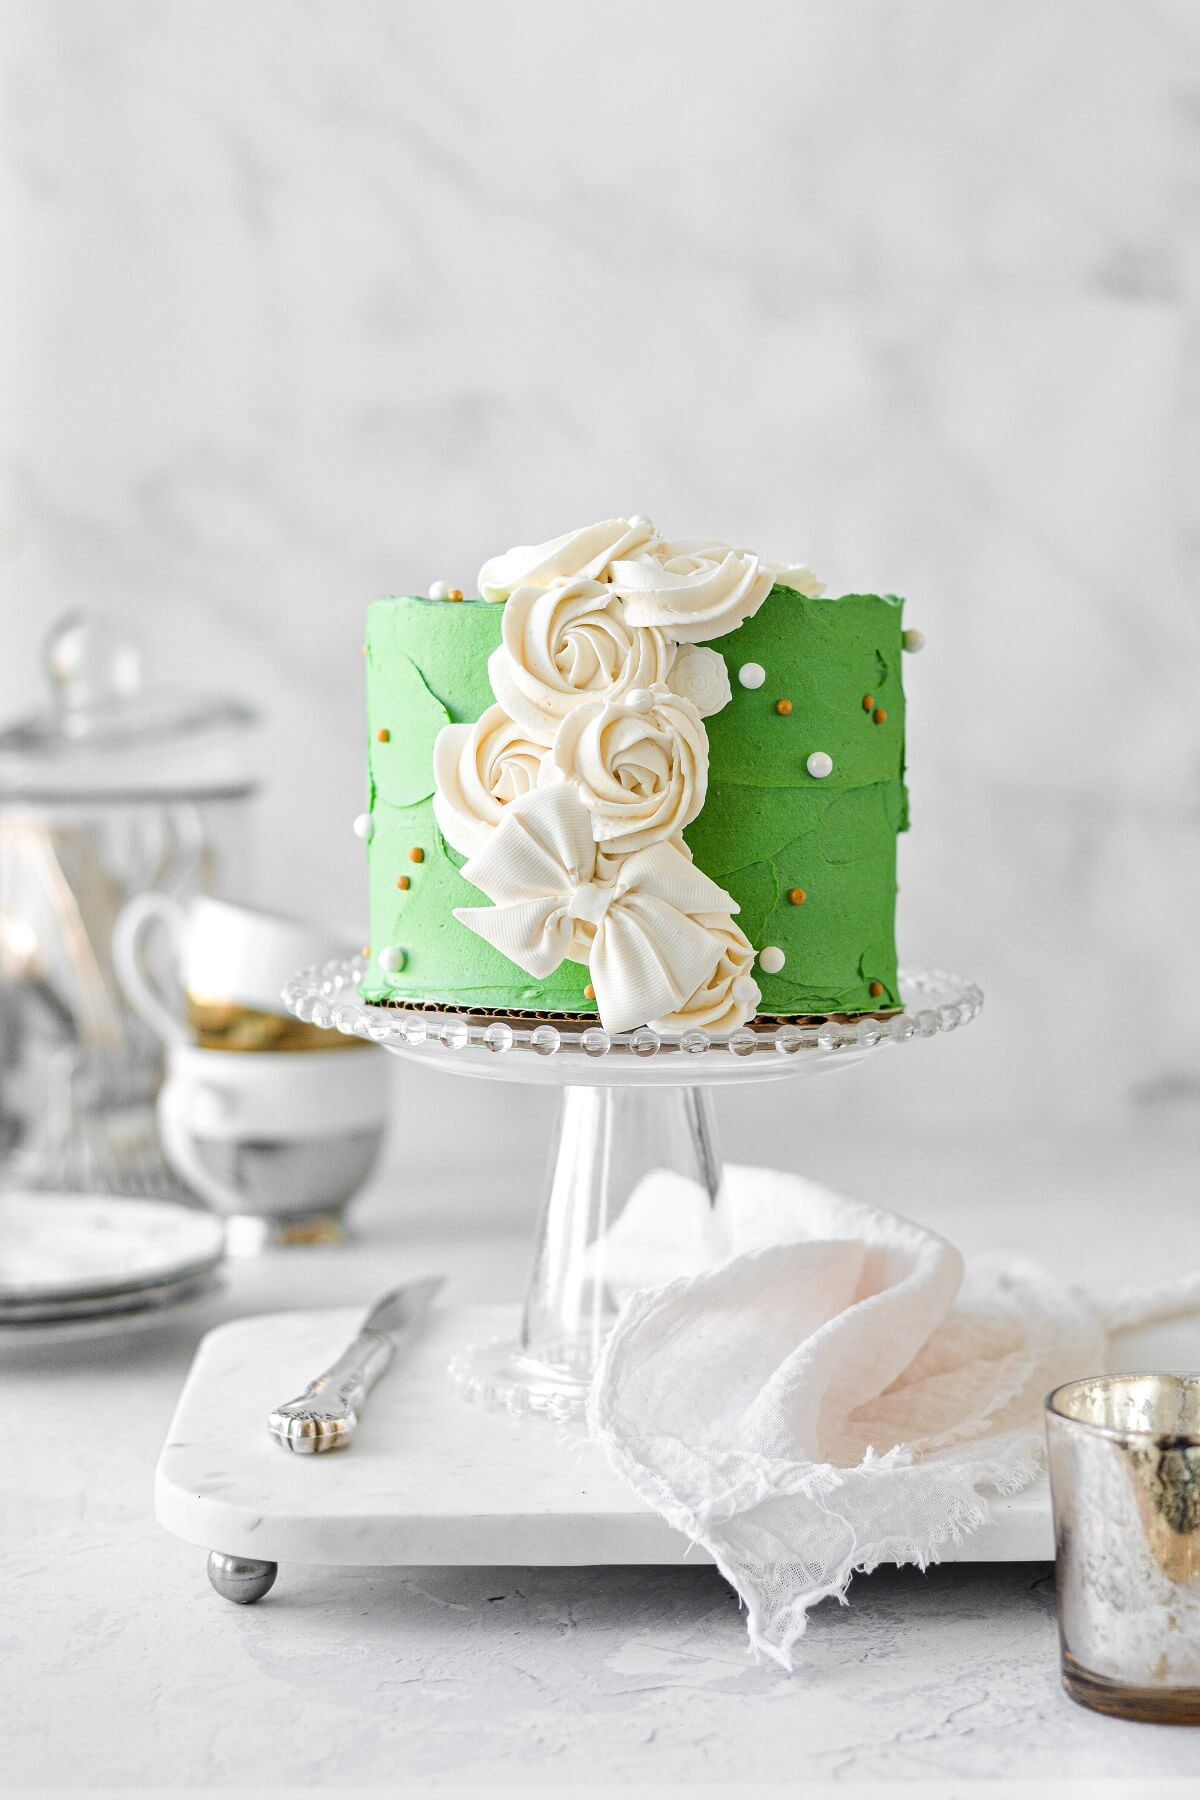 A Christmas cake with green buttercream, white rosettes and a white chocolate bow.